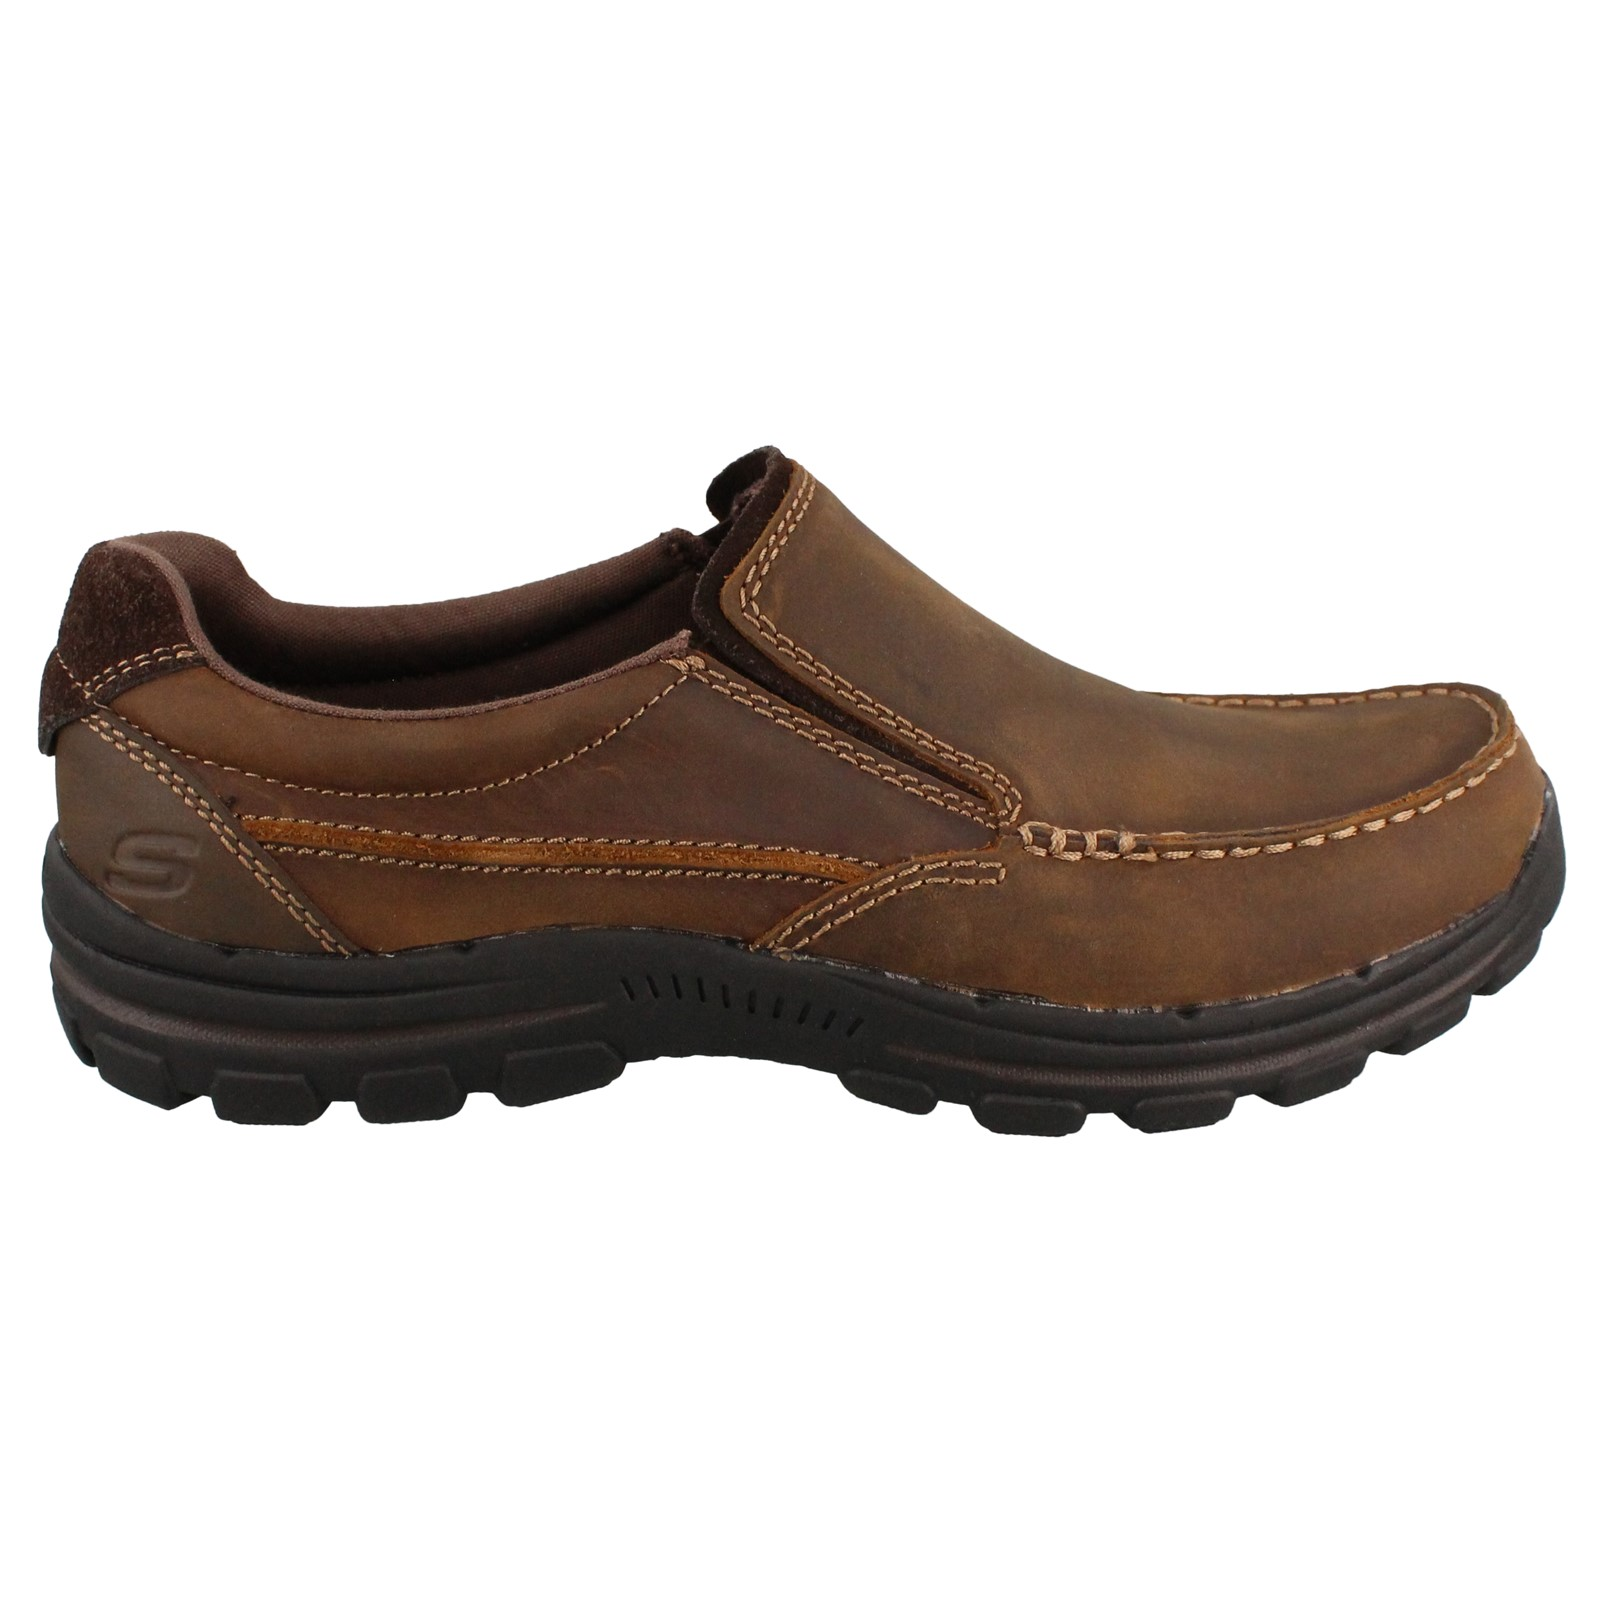 Men's Skechers, Braver Rayland Slip on casuals